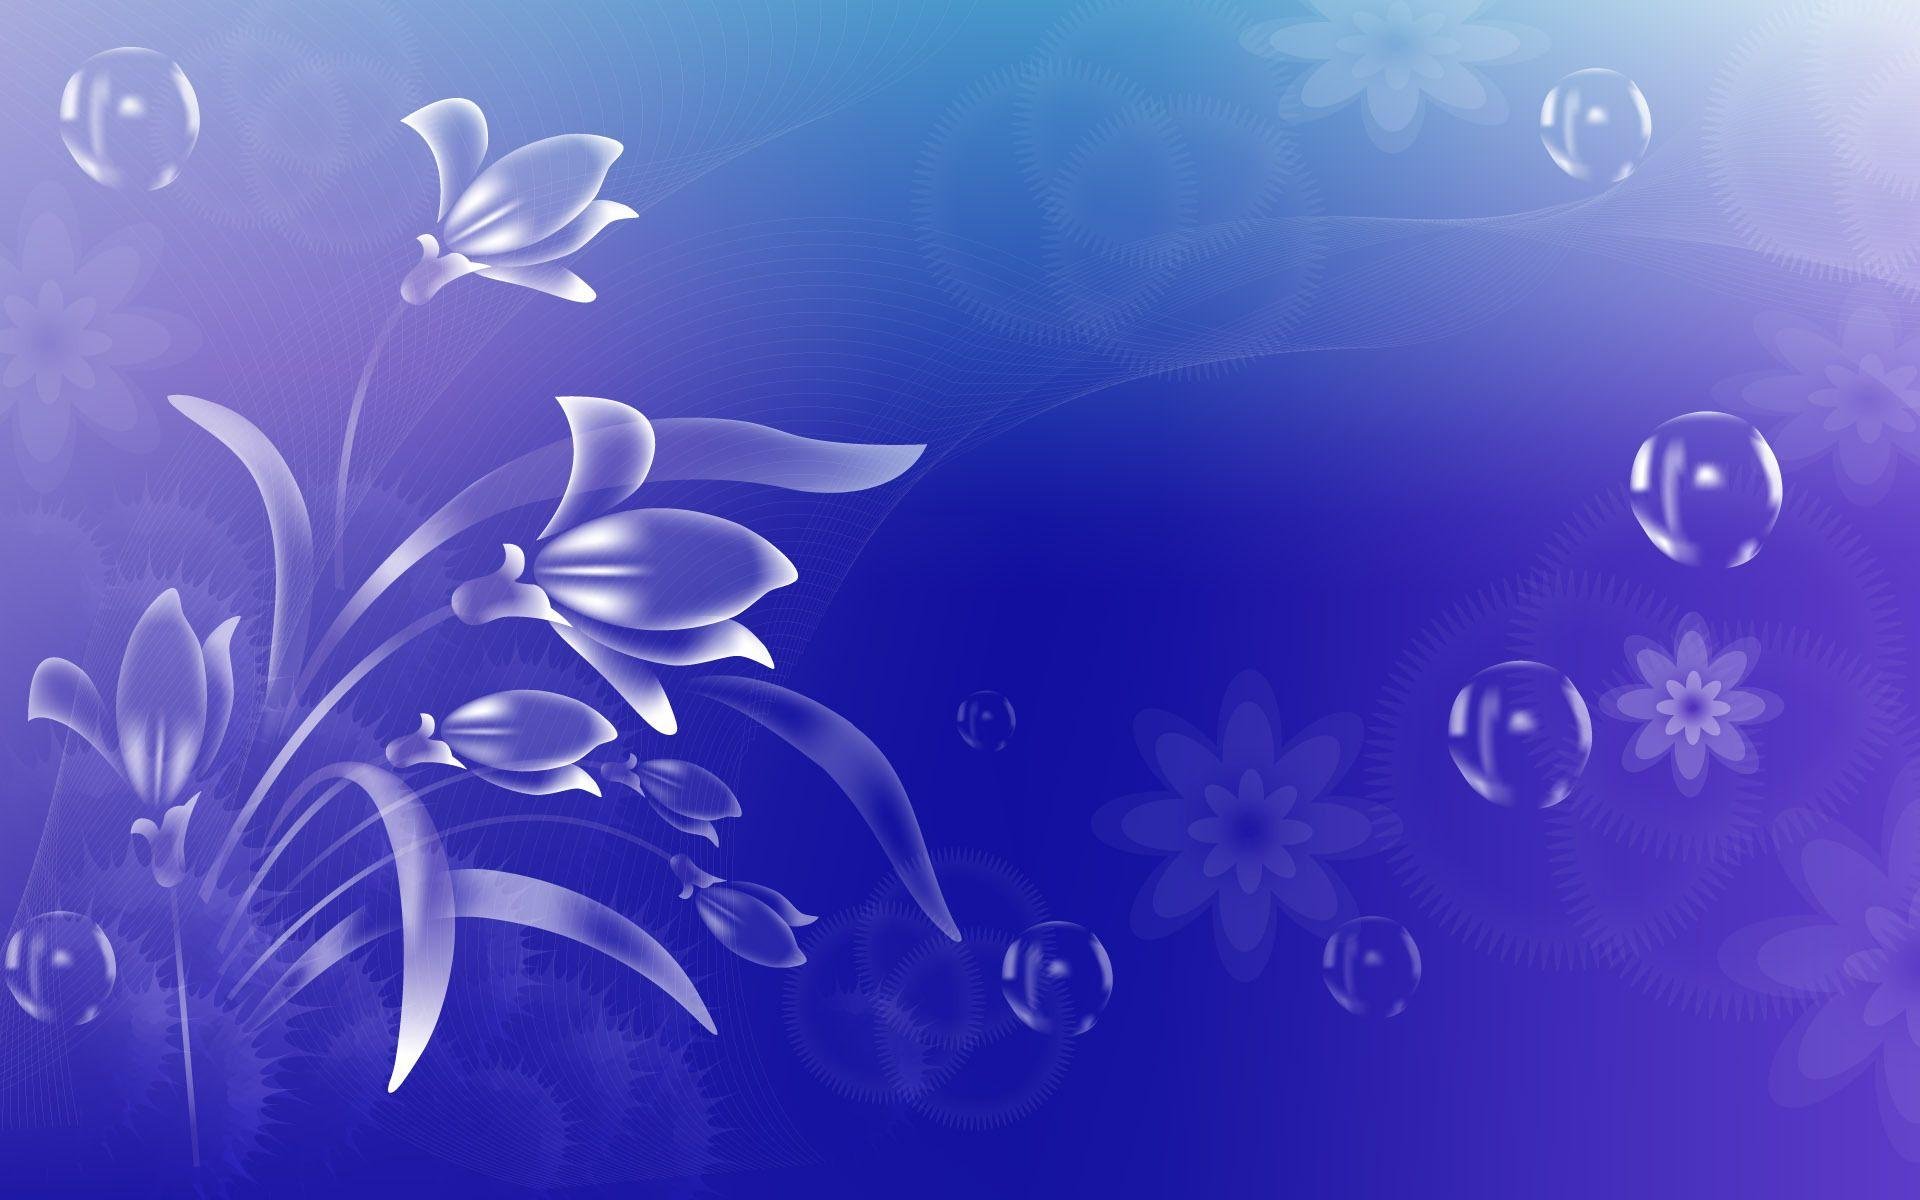 Wallpapers Flowers, Bubbles, On A Blue Backgrounds